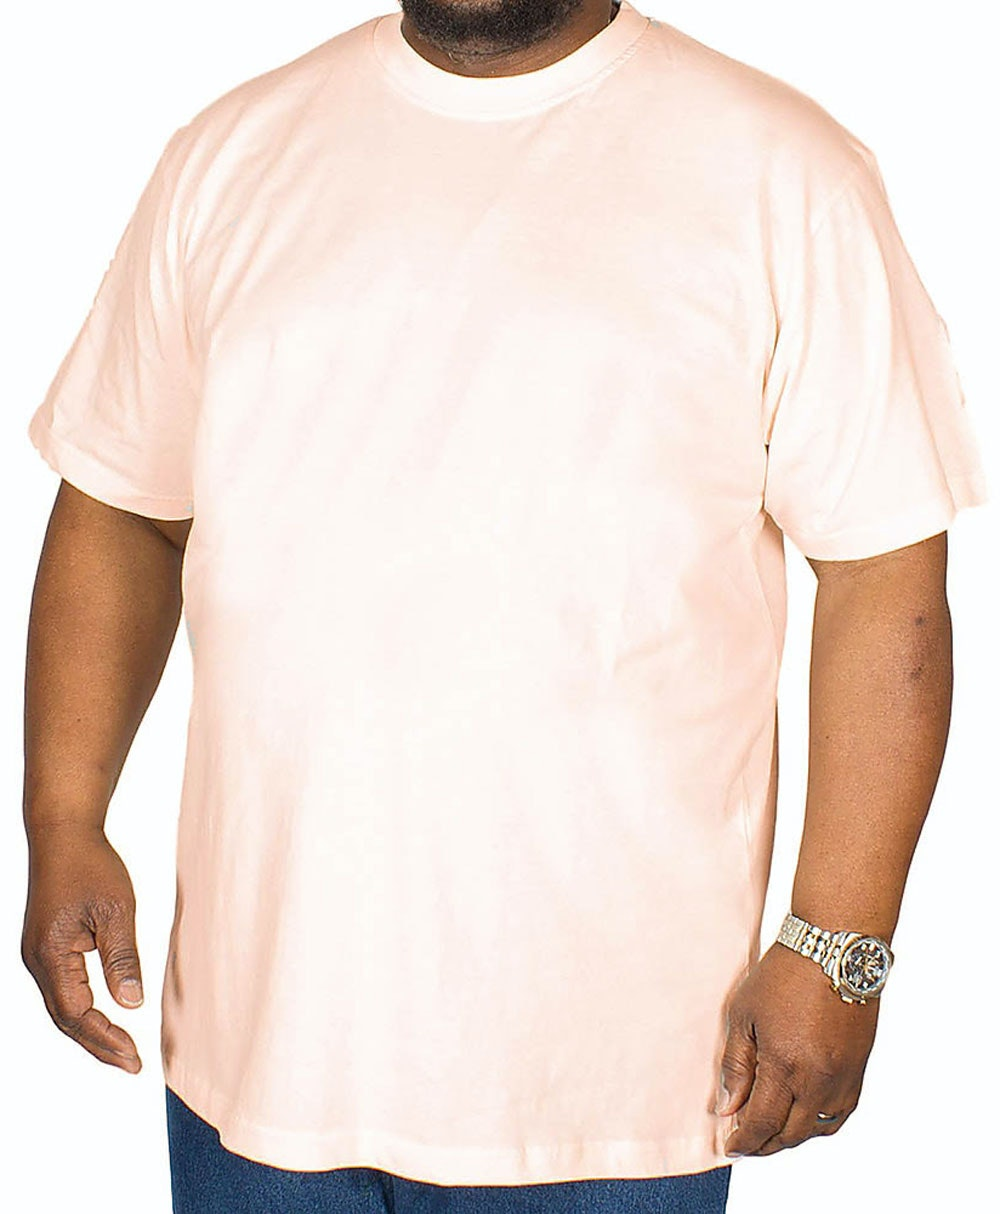 Bigdude Plain Crew Neck T-Shirt Pale Pink